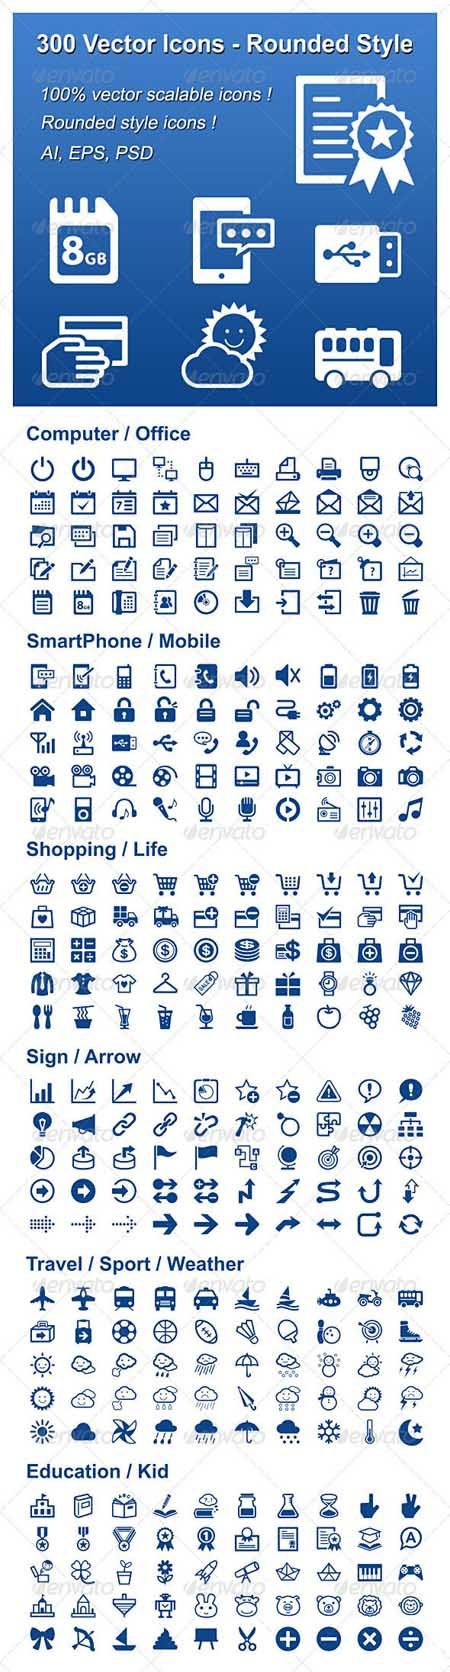 300_vector_icons_rounded_style